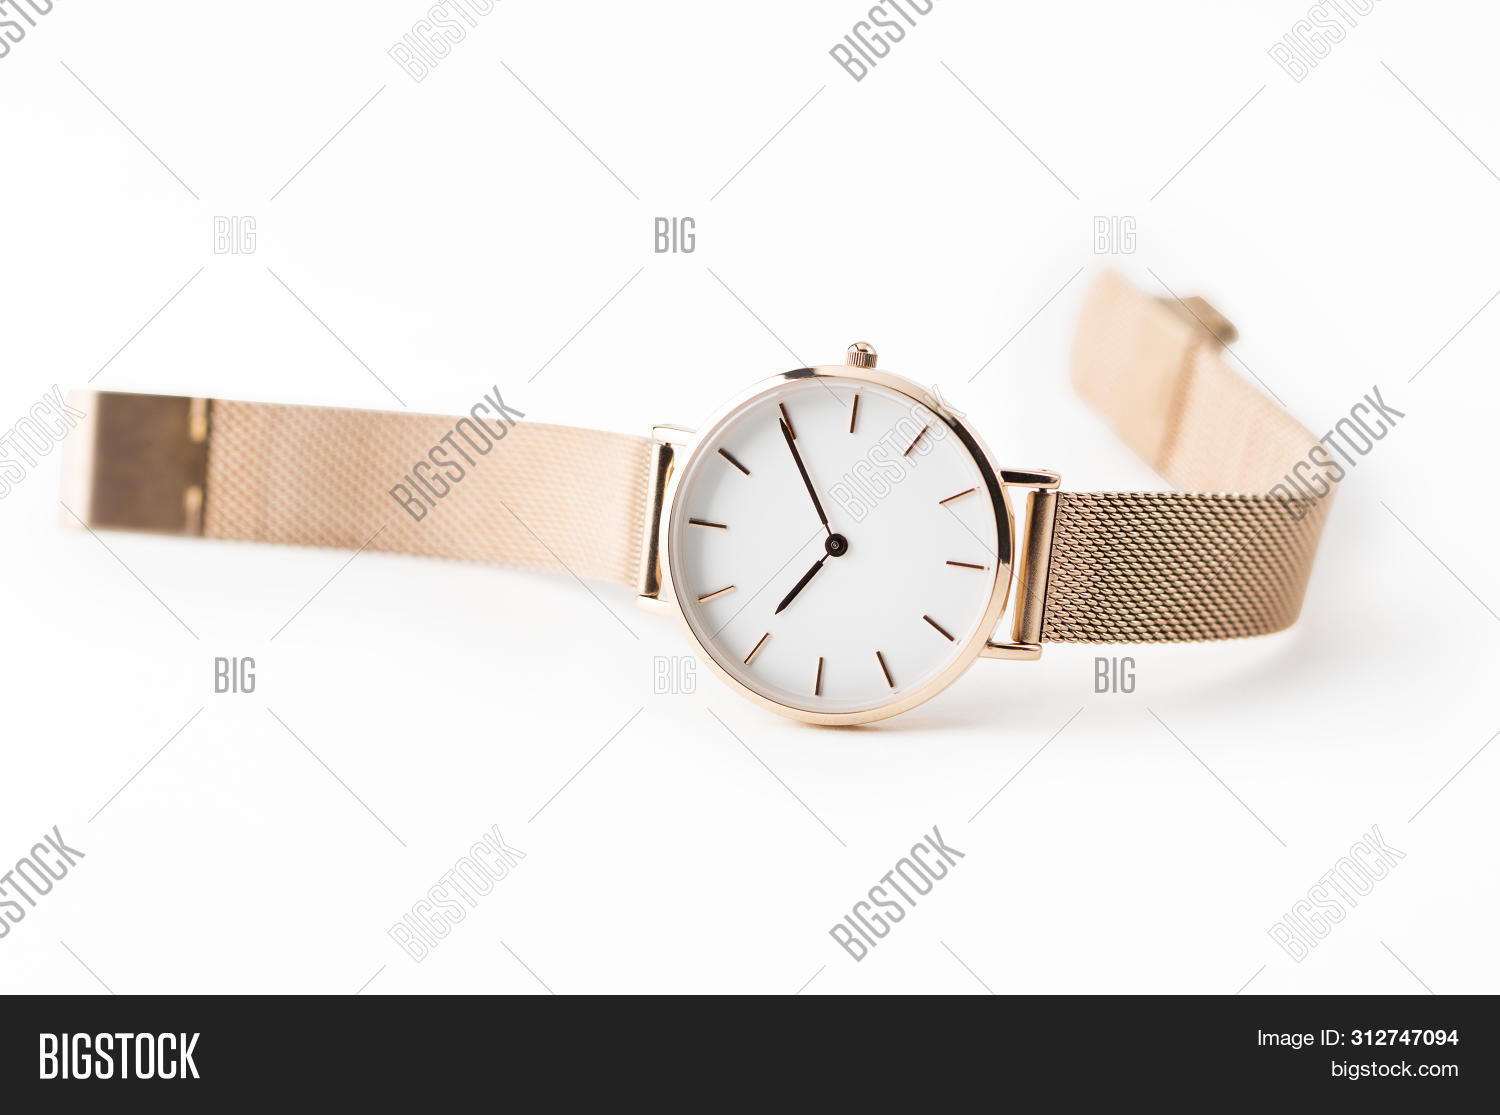 Luxury watch isolated on white background. With clipping path. Gold watch. Women watch. Female watch.